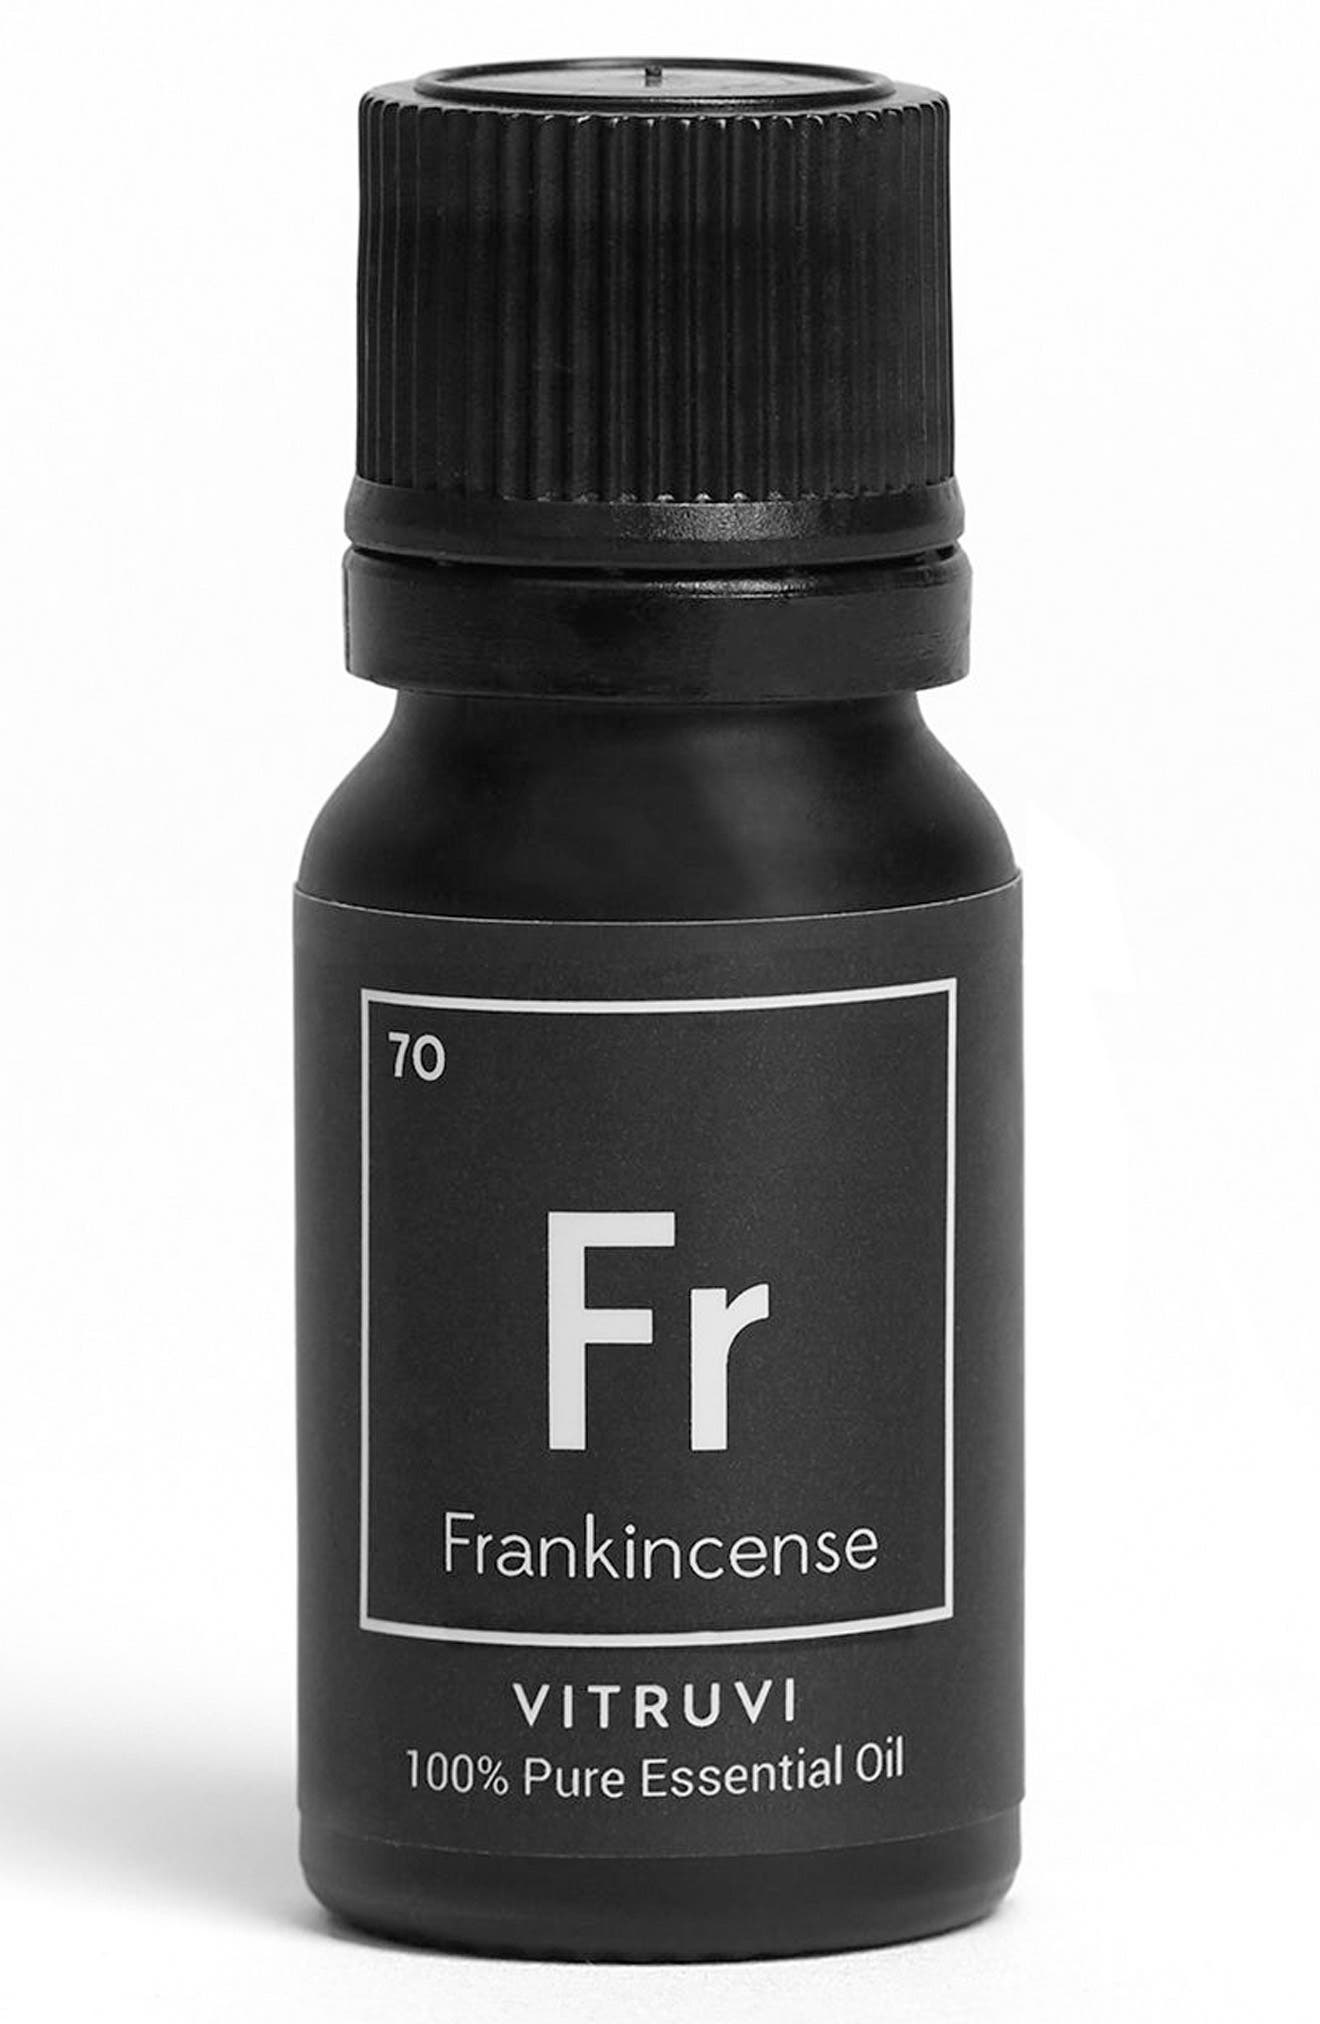 Vitruvi Frankincense Essential Oil